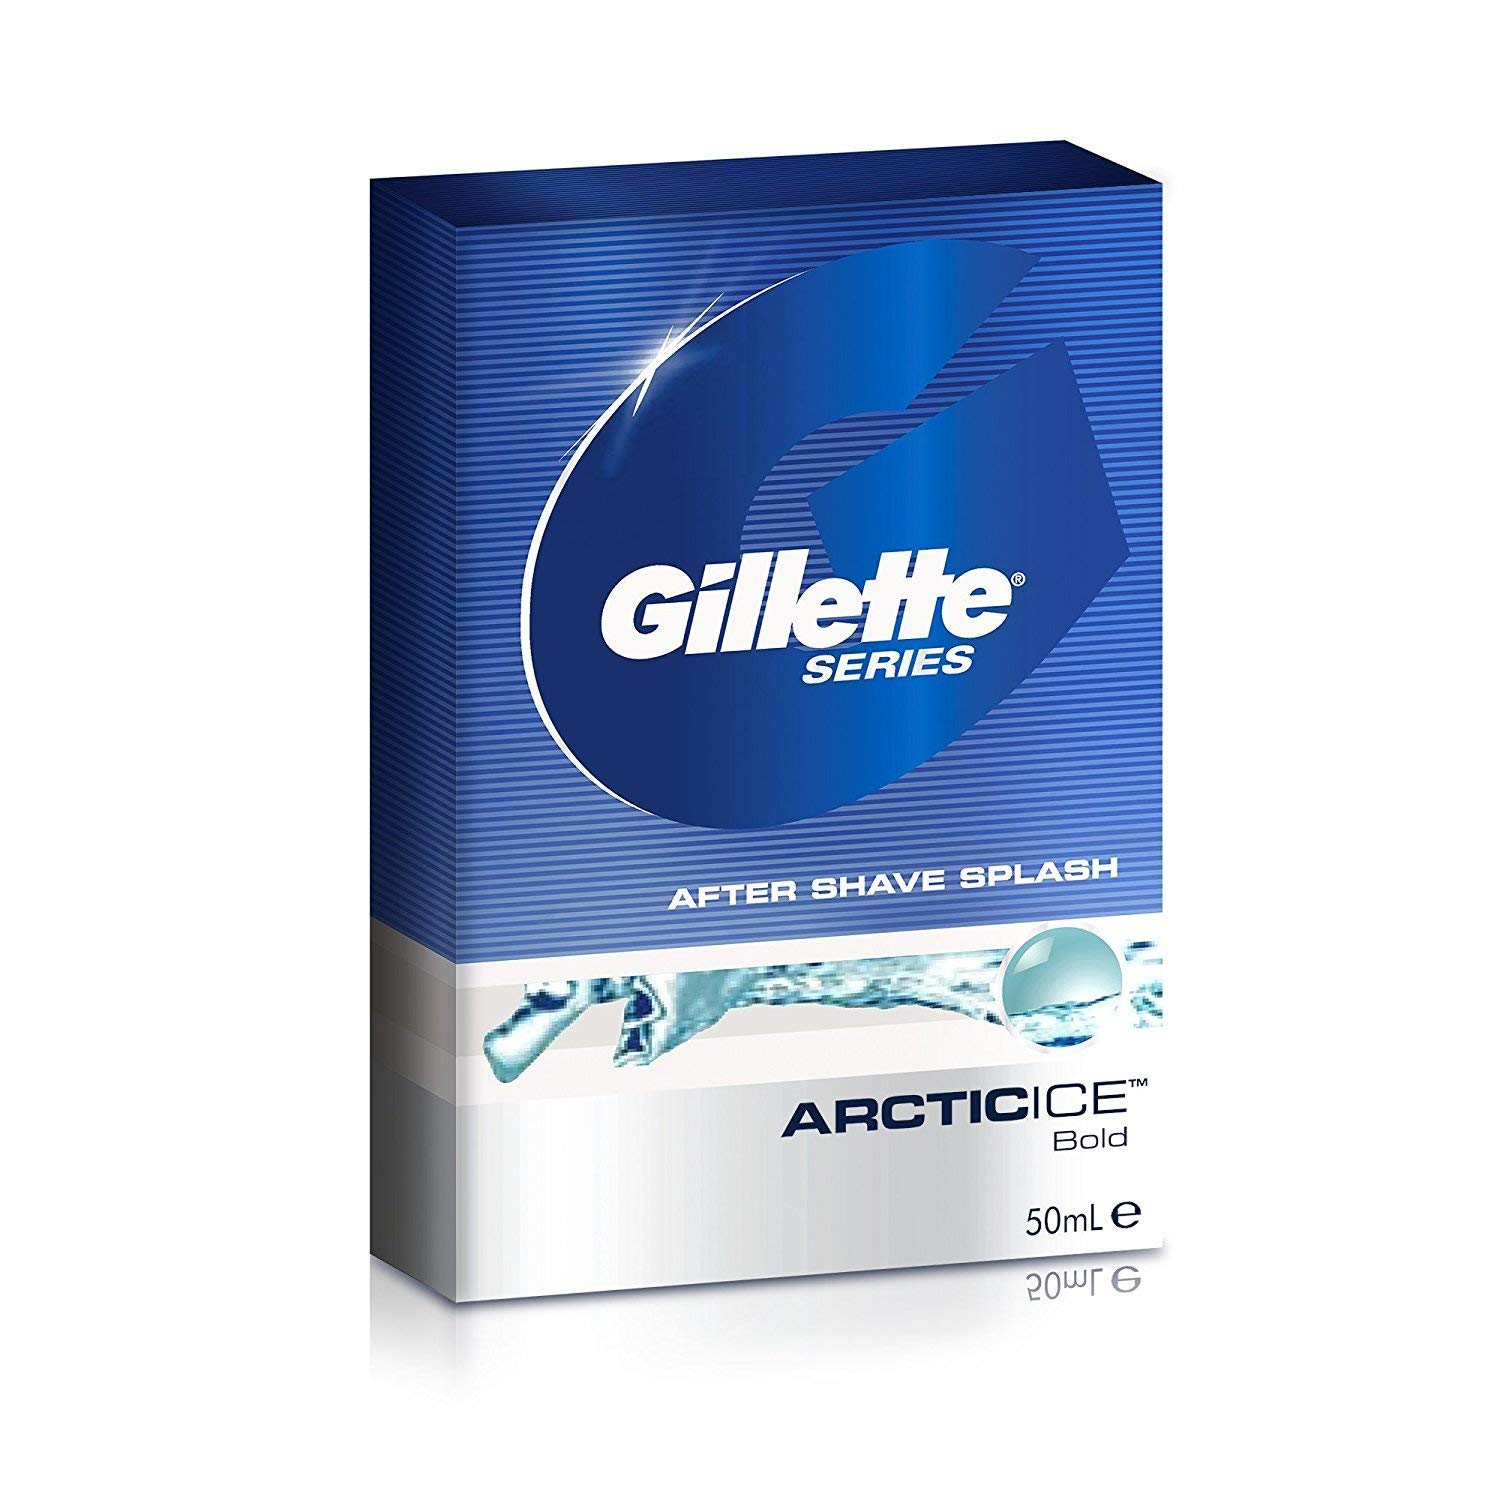 Gillette Series Arctic Ice After Shave Splash - 50 ml